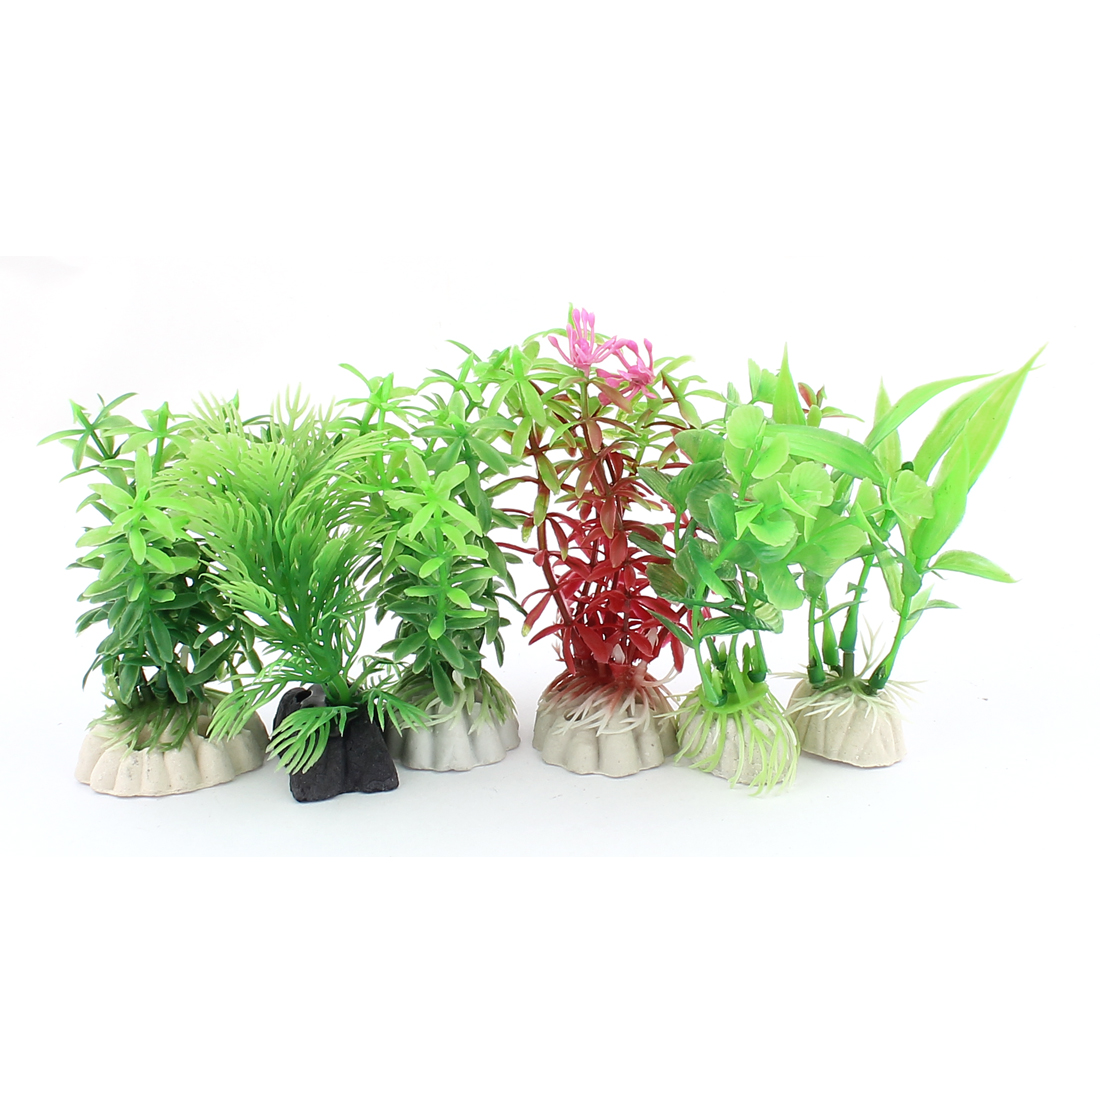 Plastic Simulation Aquascaping Underwater Grass Decor Aquarium Plant 6PCS